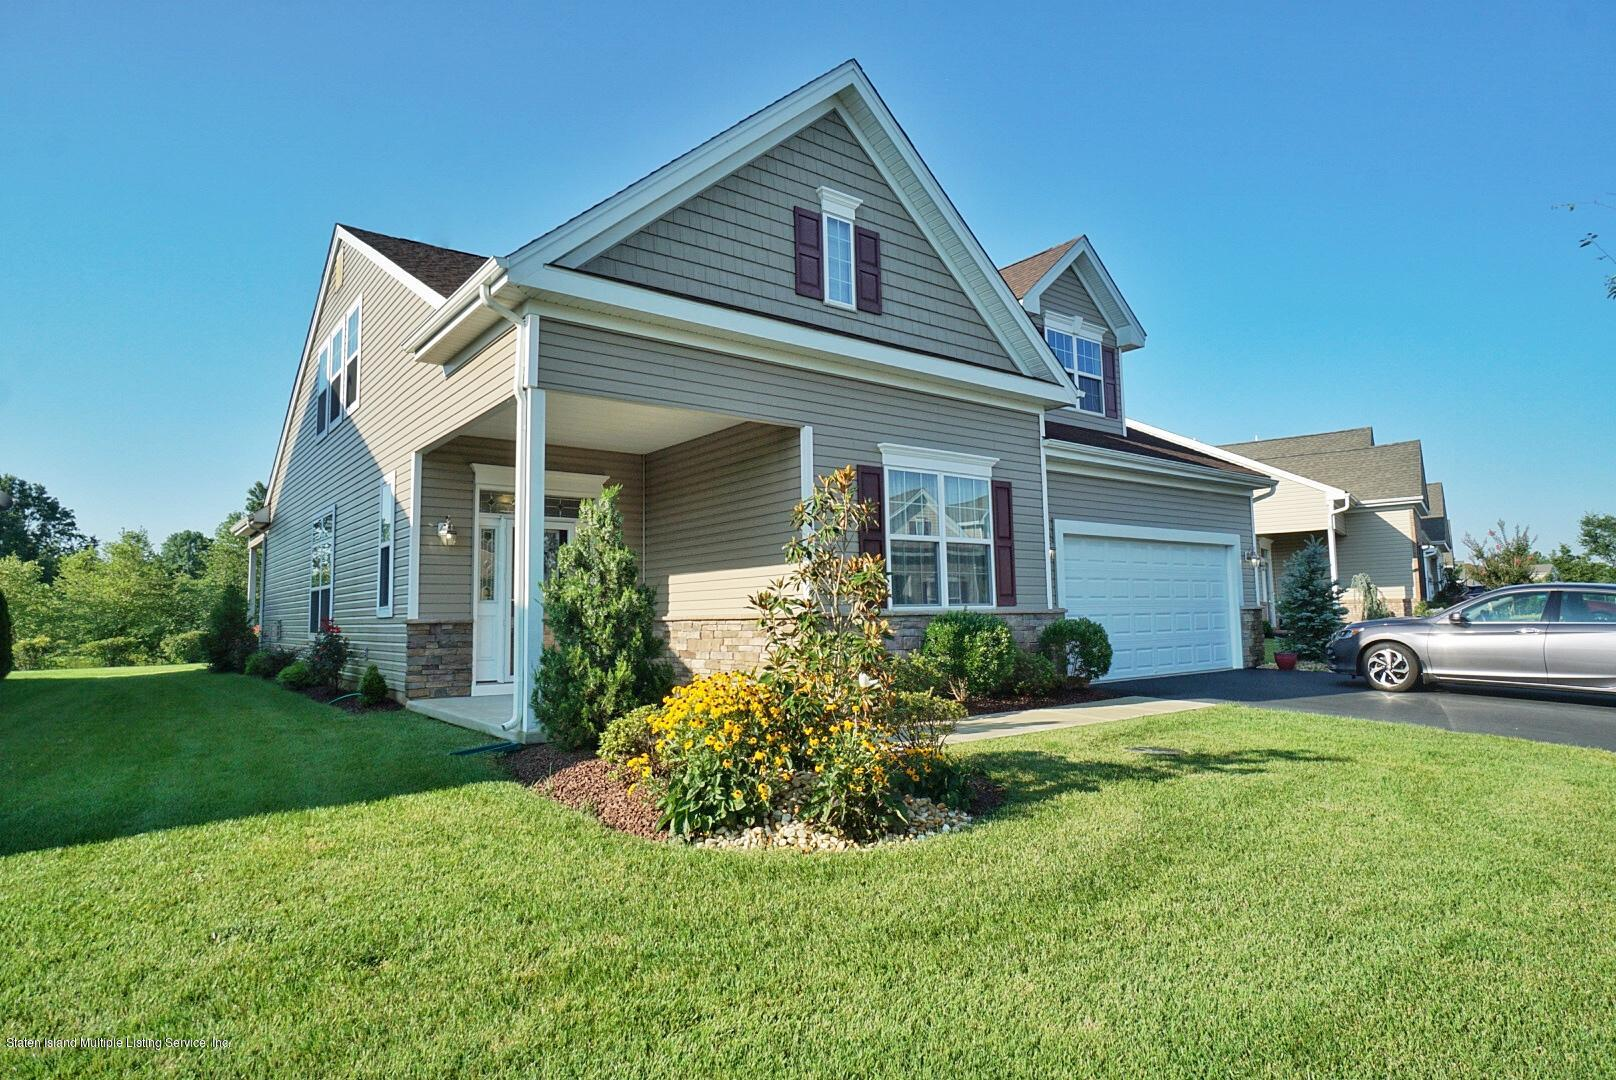 Single Family - Detached 141 Cobblestone Boulevard  Out Of Area, NY 08831, MLS-1139044-2